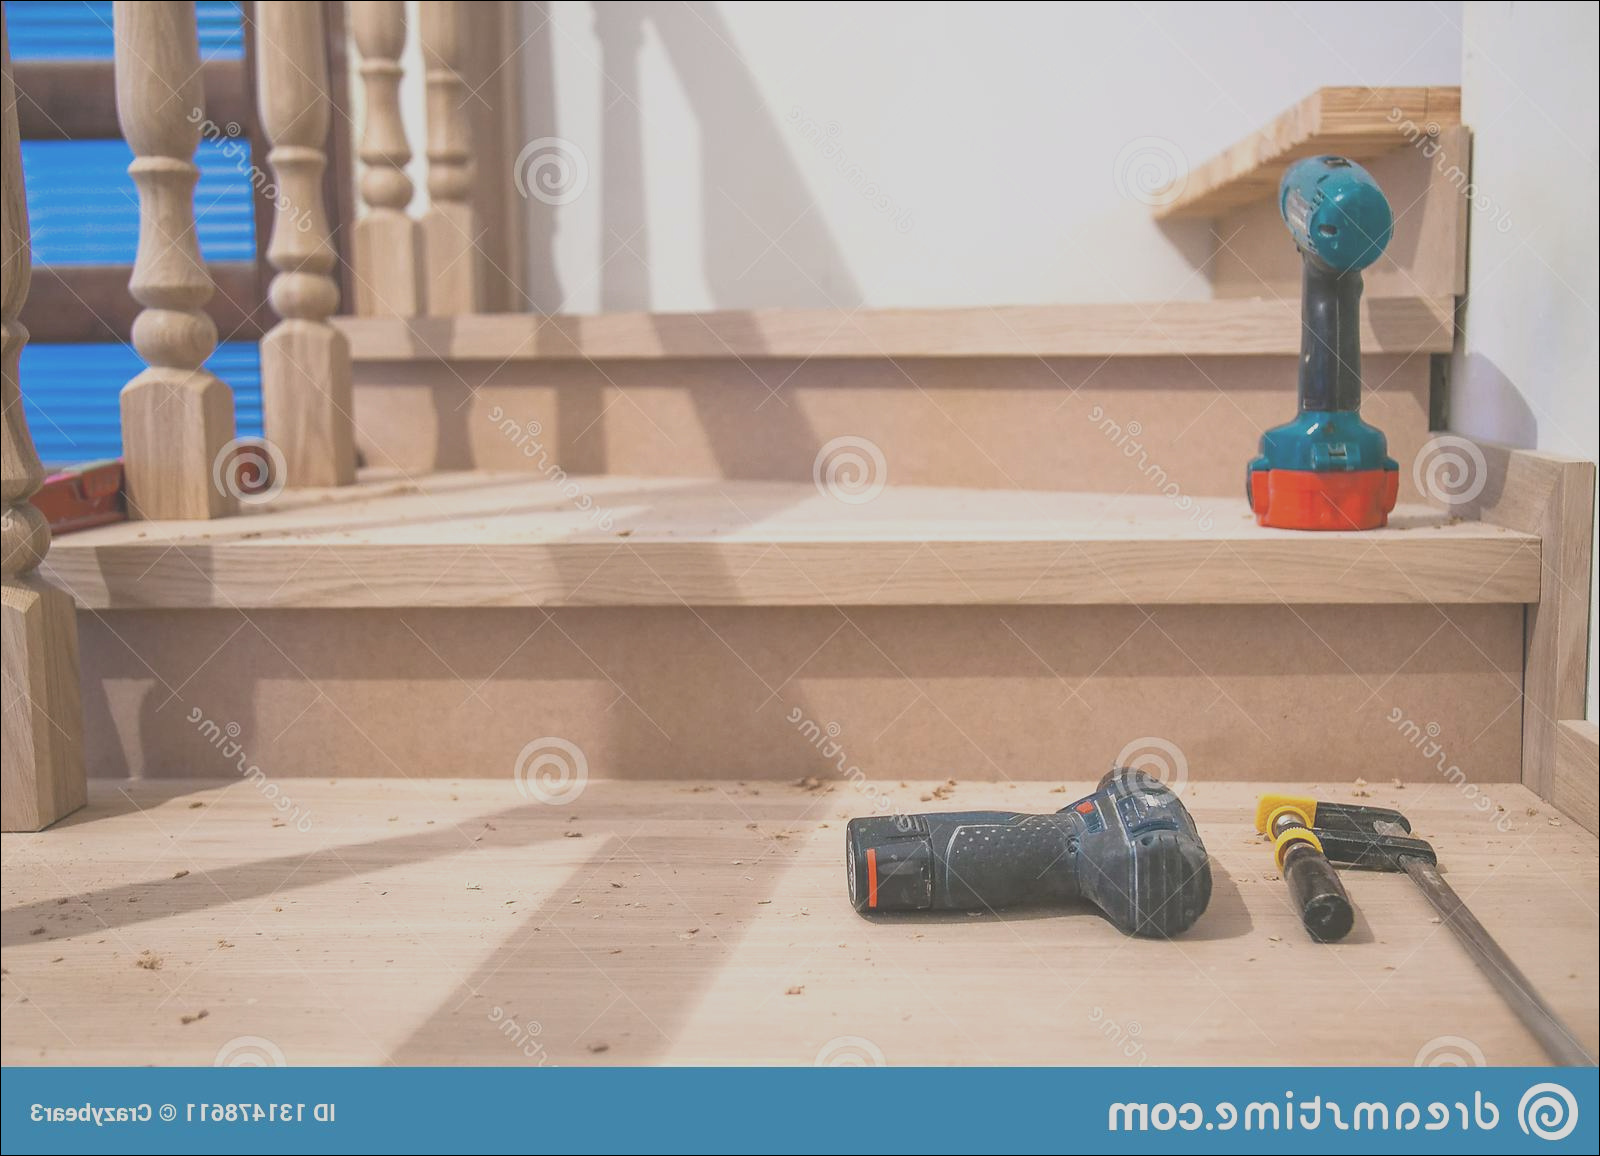 manufacturing repair wooden stairs residential building close up image